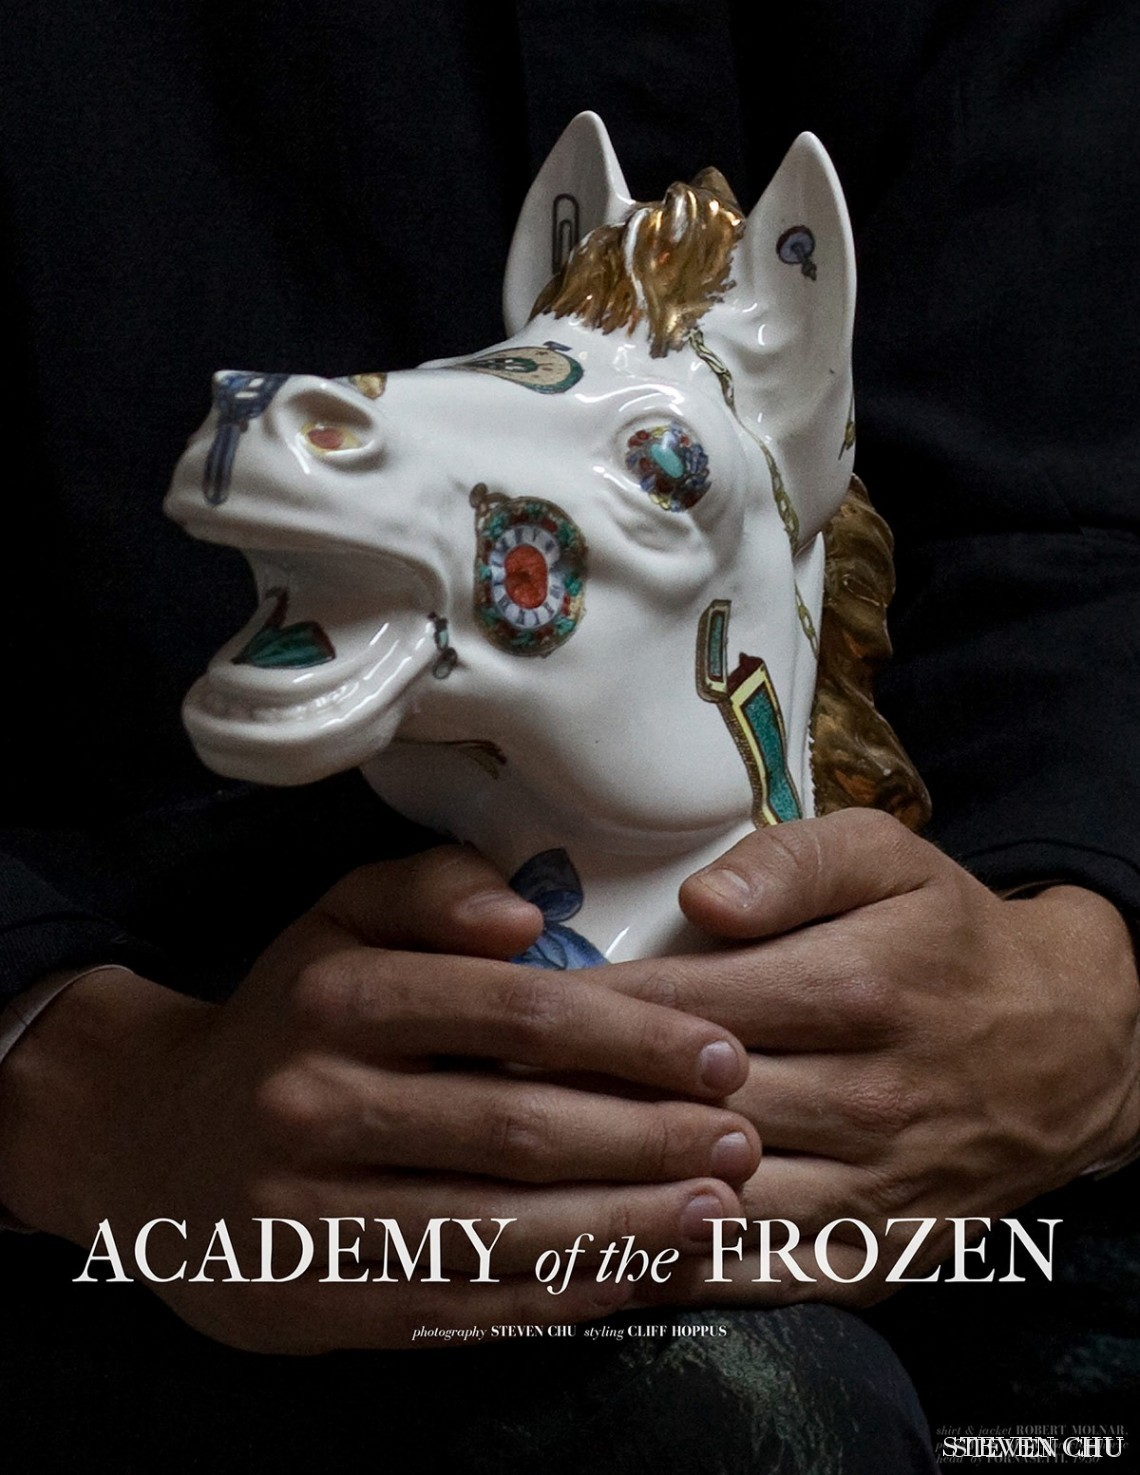 Academy of the Frozen